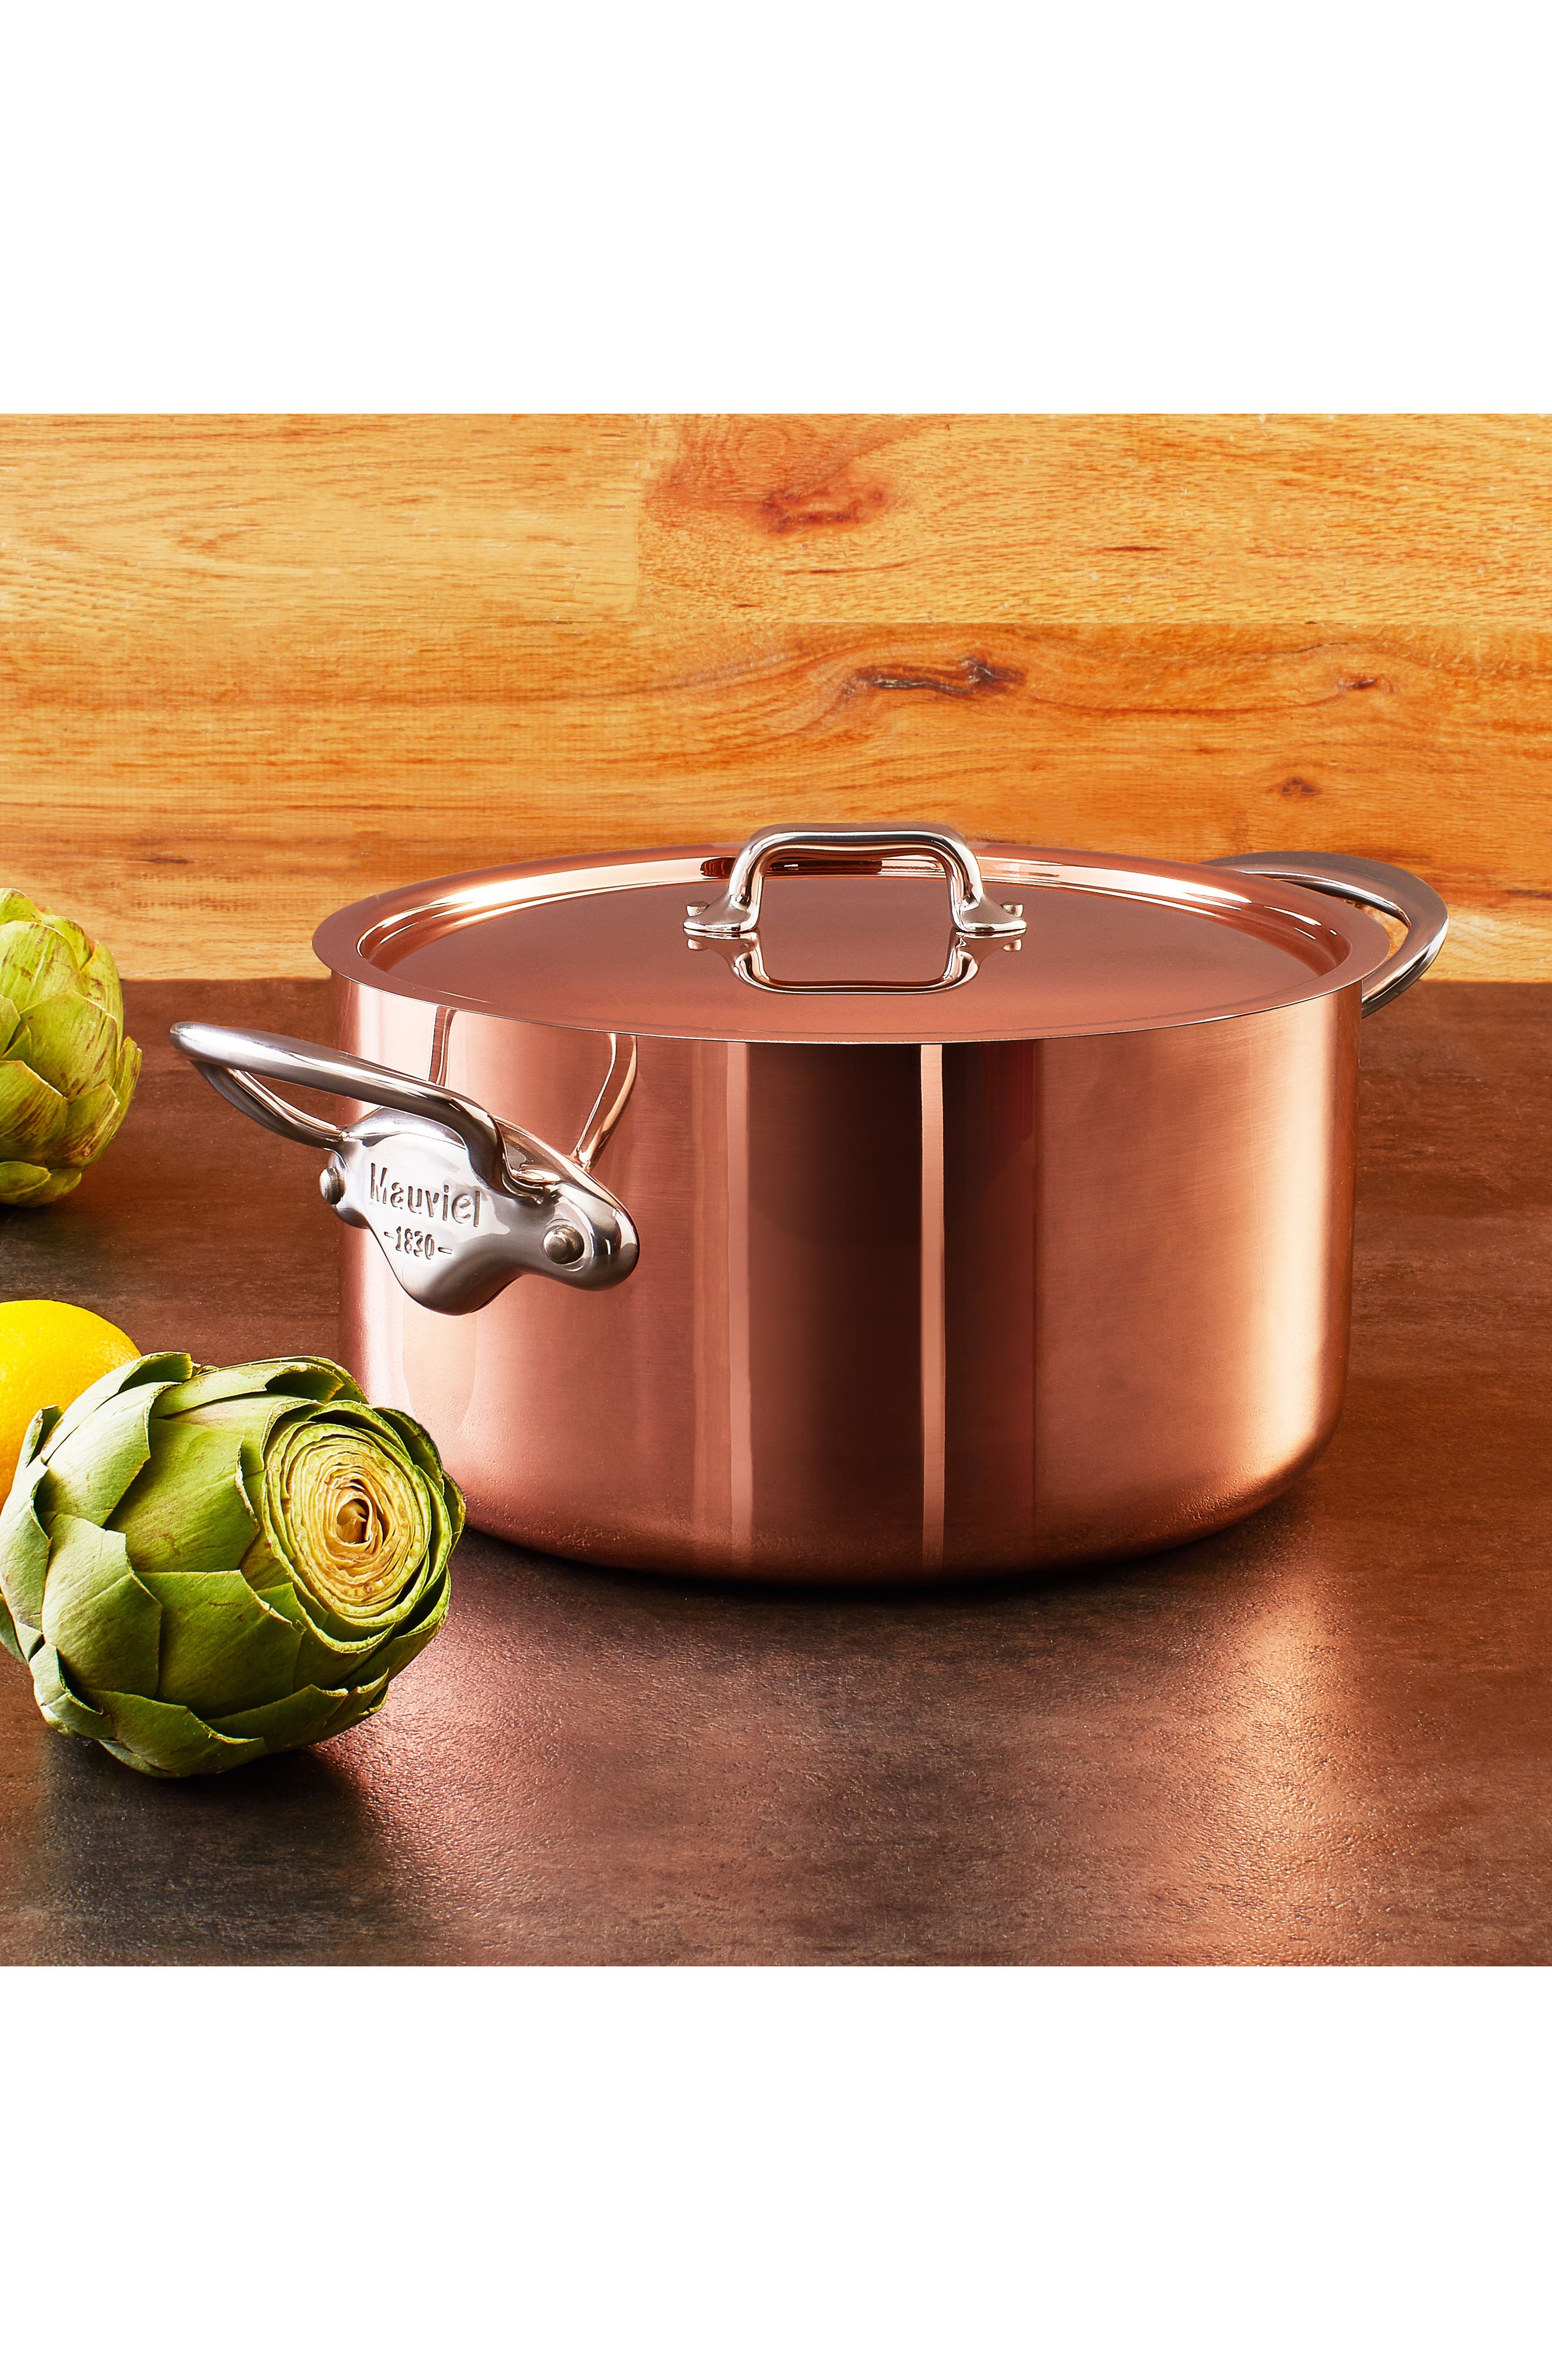 M'héritage - M'150s Copper & Stainless Steel Stew Pot with Lid,                             Alternate thumbnail 3, color,                             METALLIC RUST/COPPER